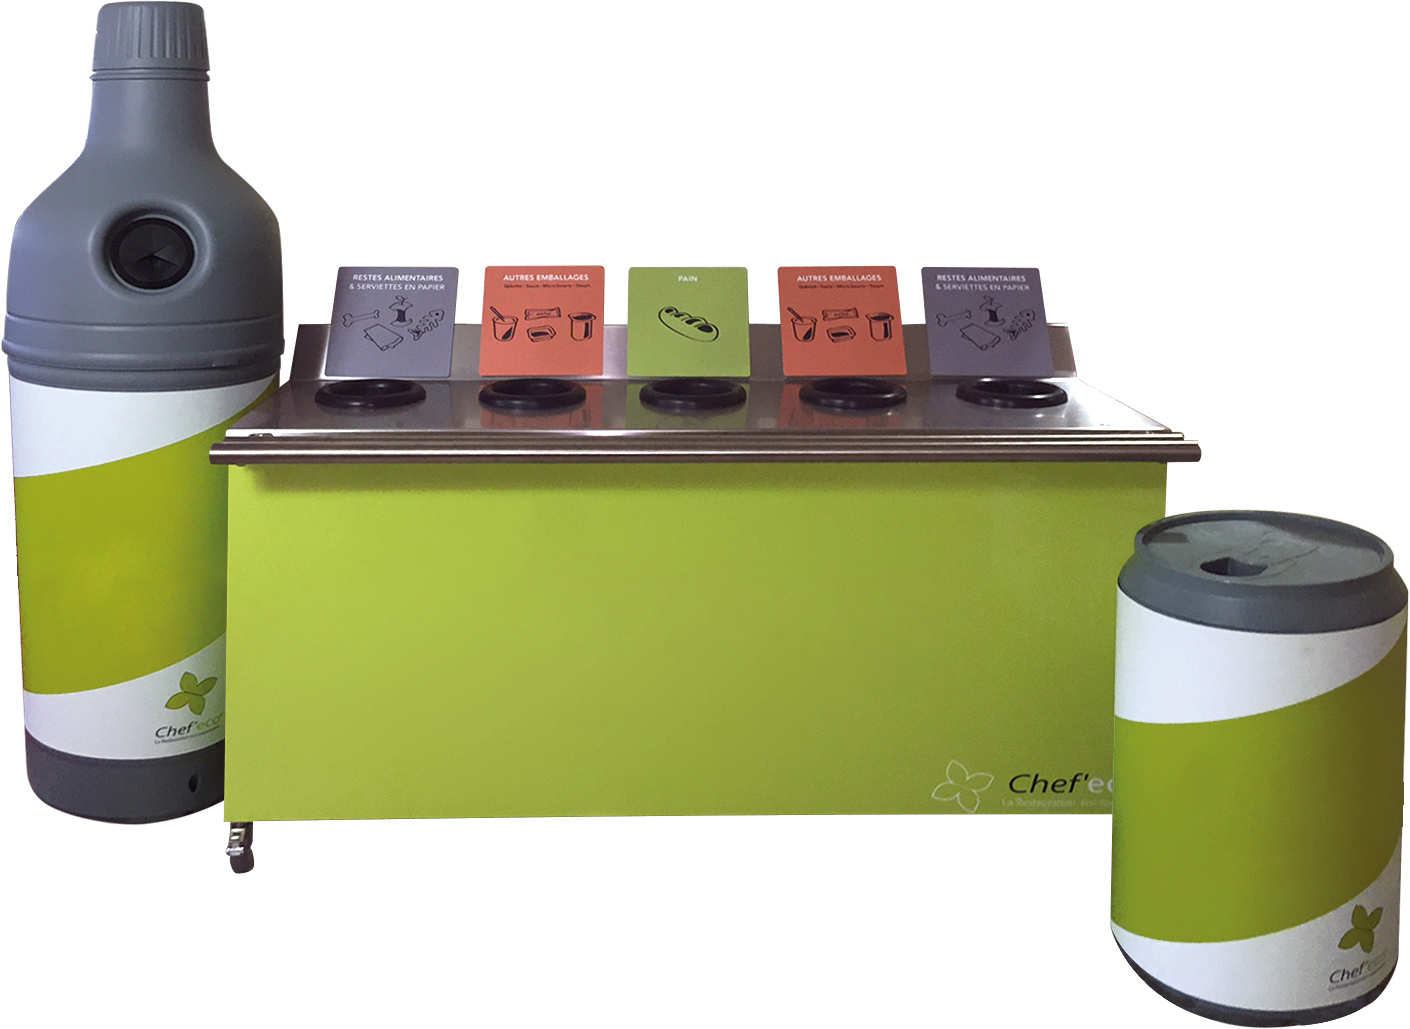 recup'bouteille recup'canette Chef'eco